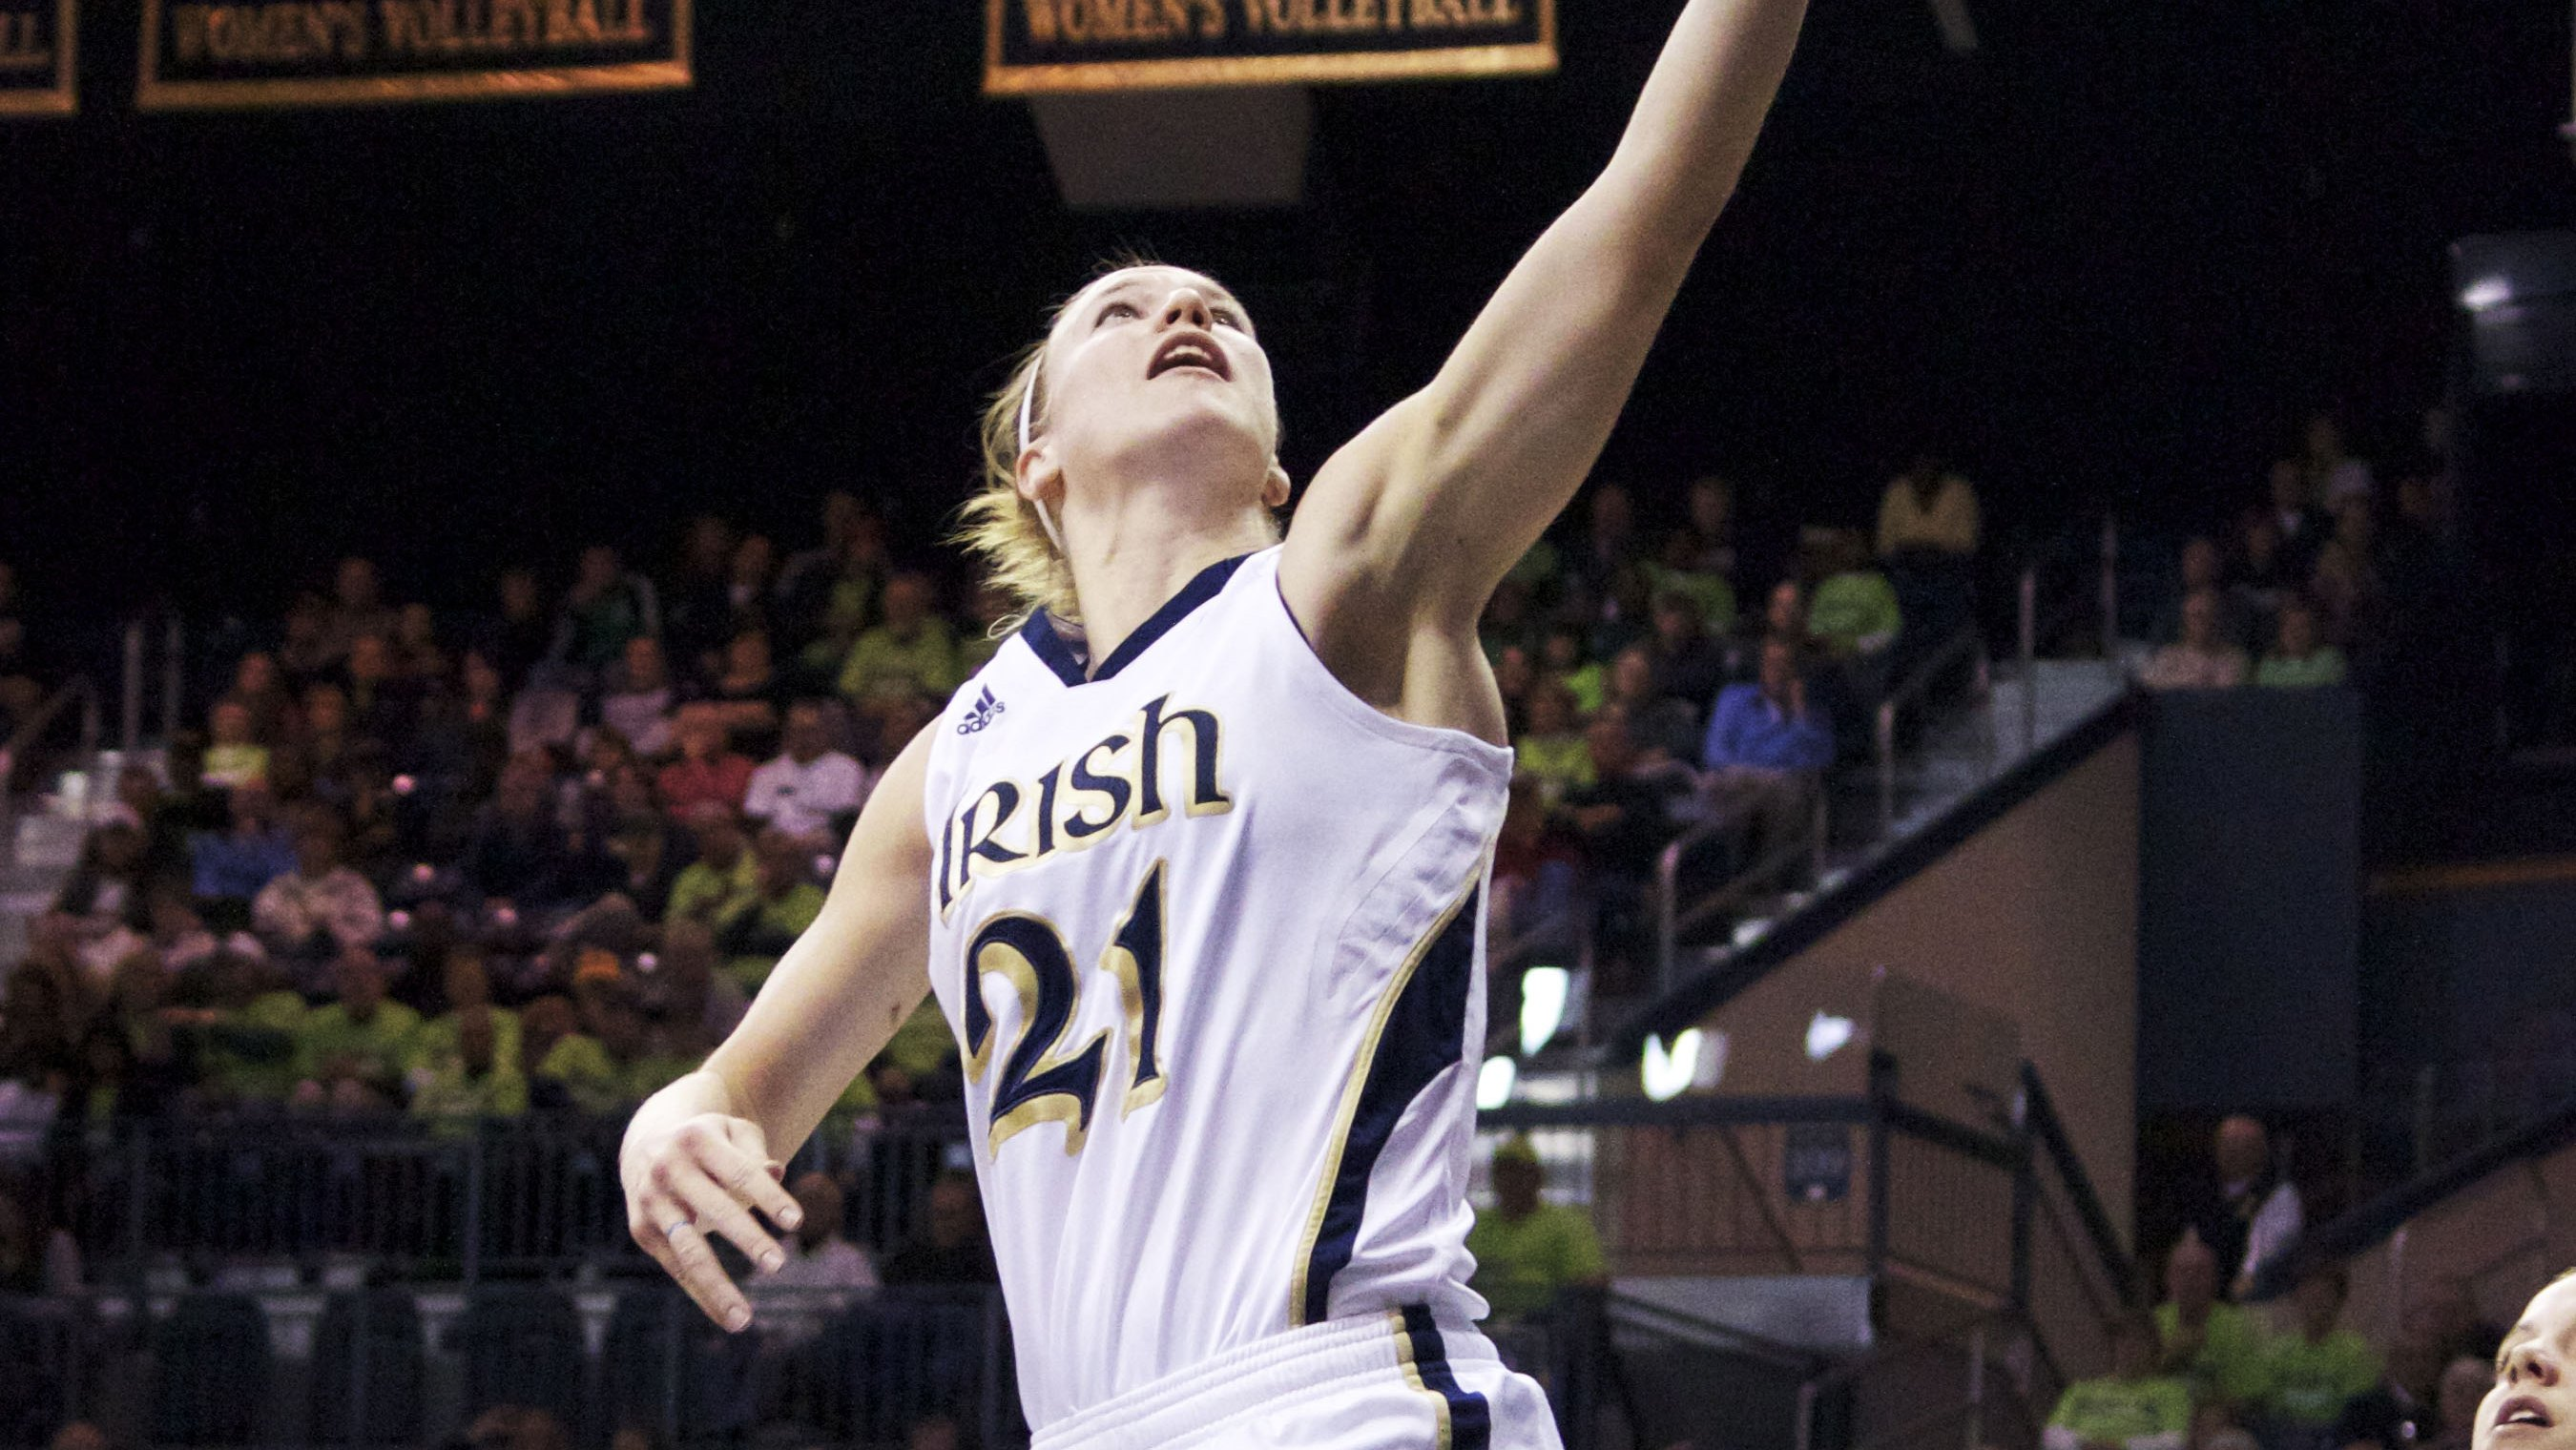 Dishin on the Elite Eight: Final Four-bound Notre Dame impressive in rout of Maryland